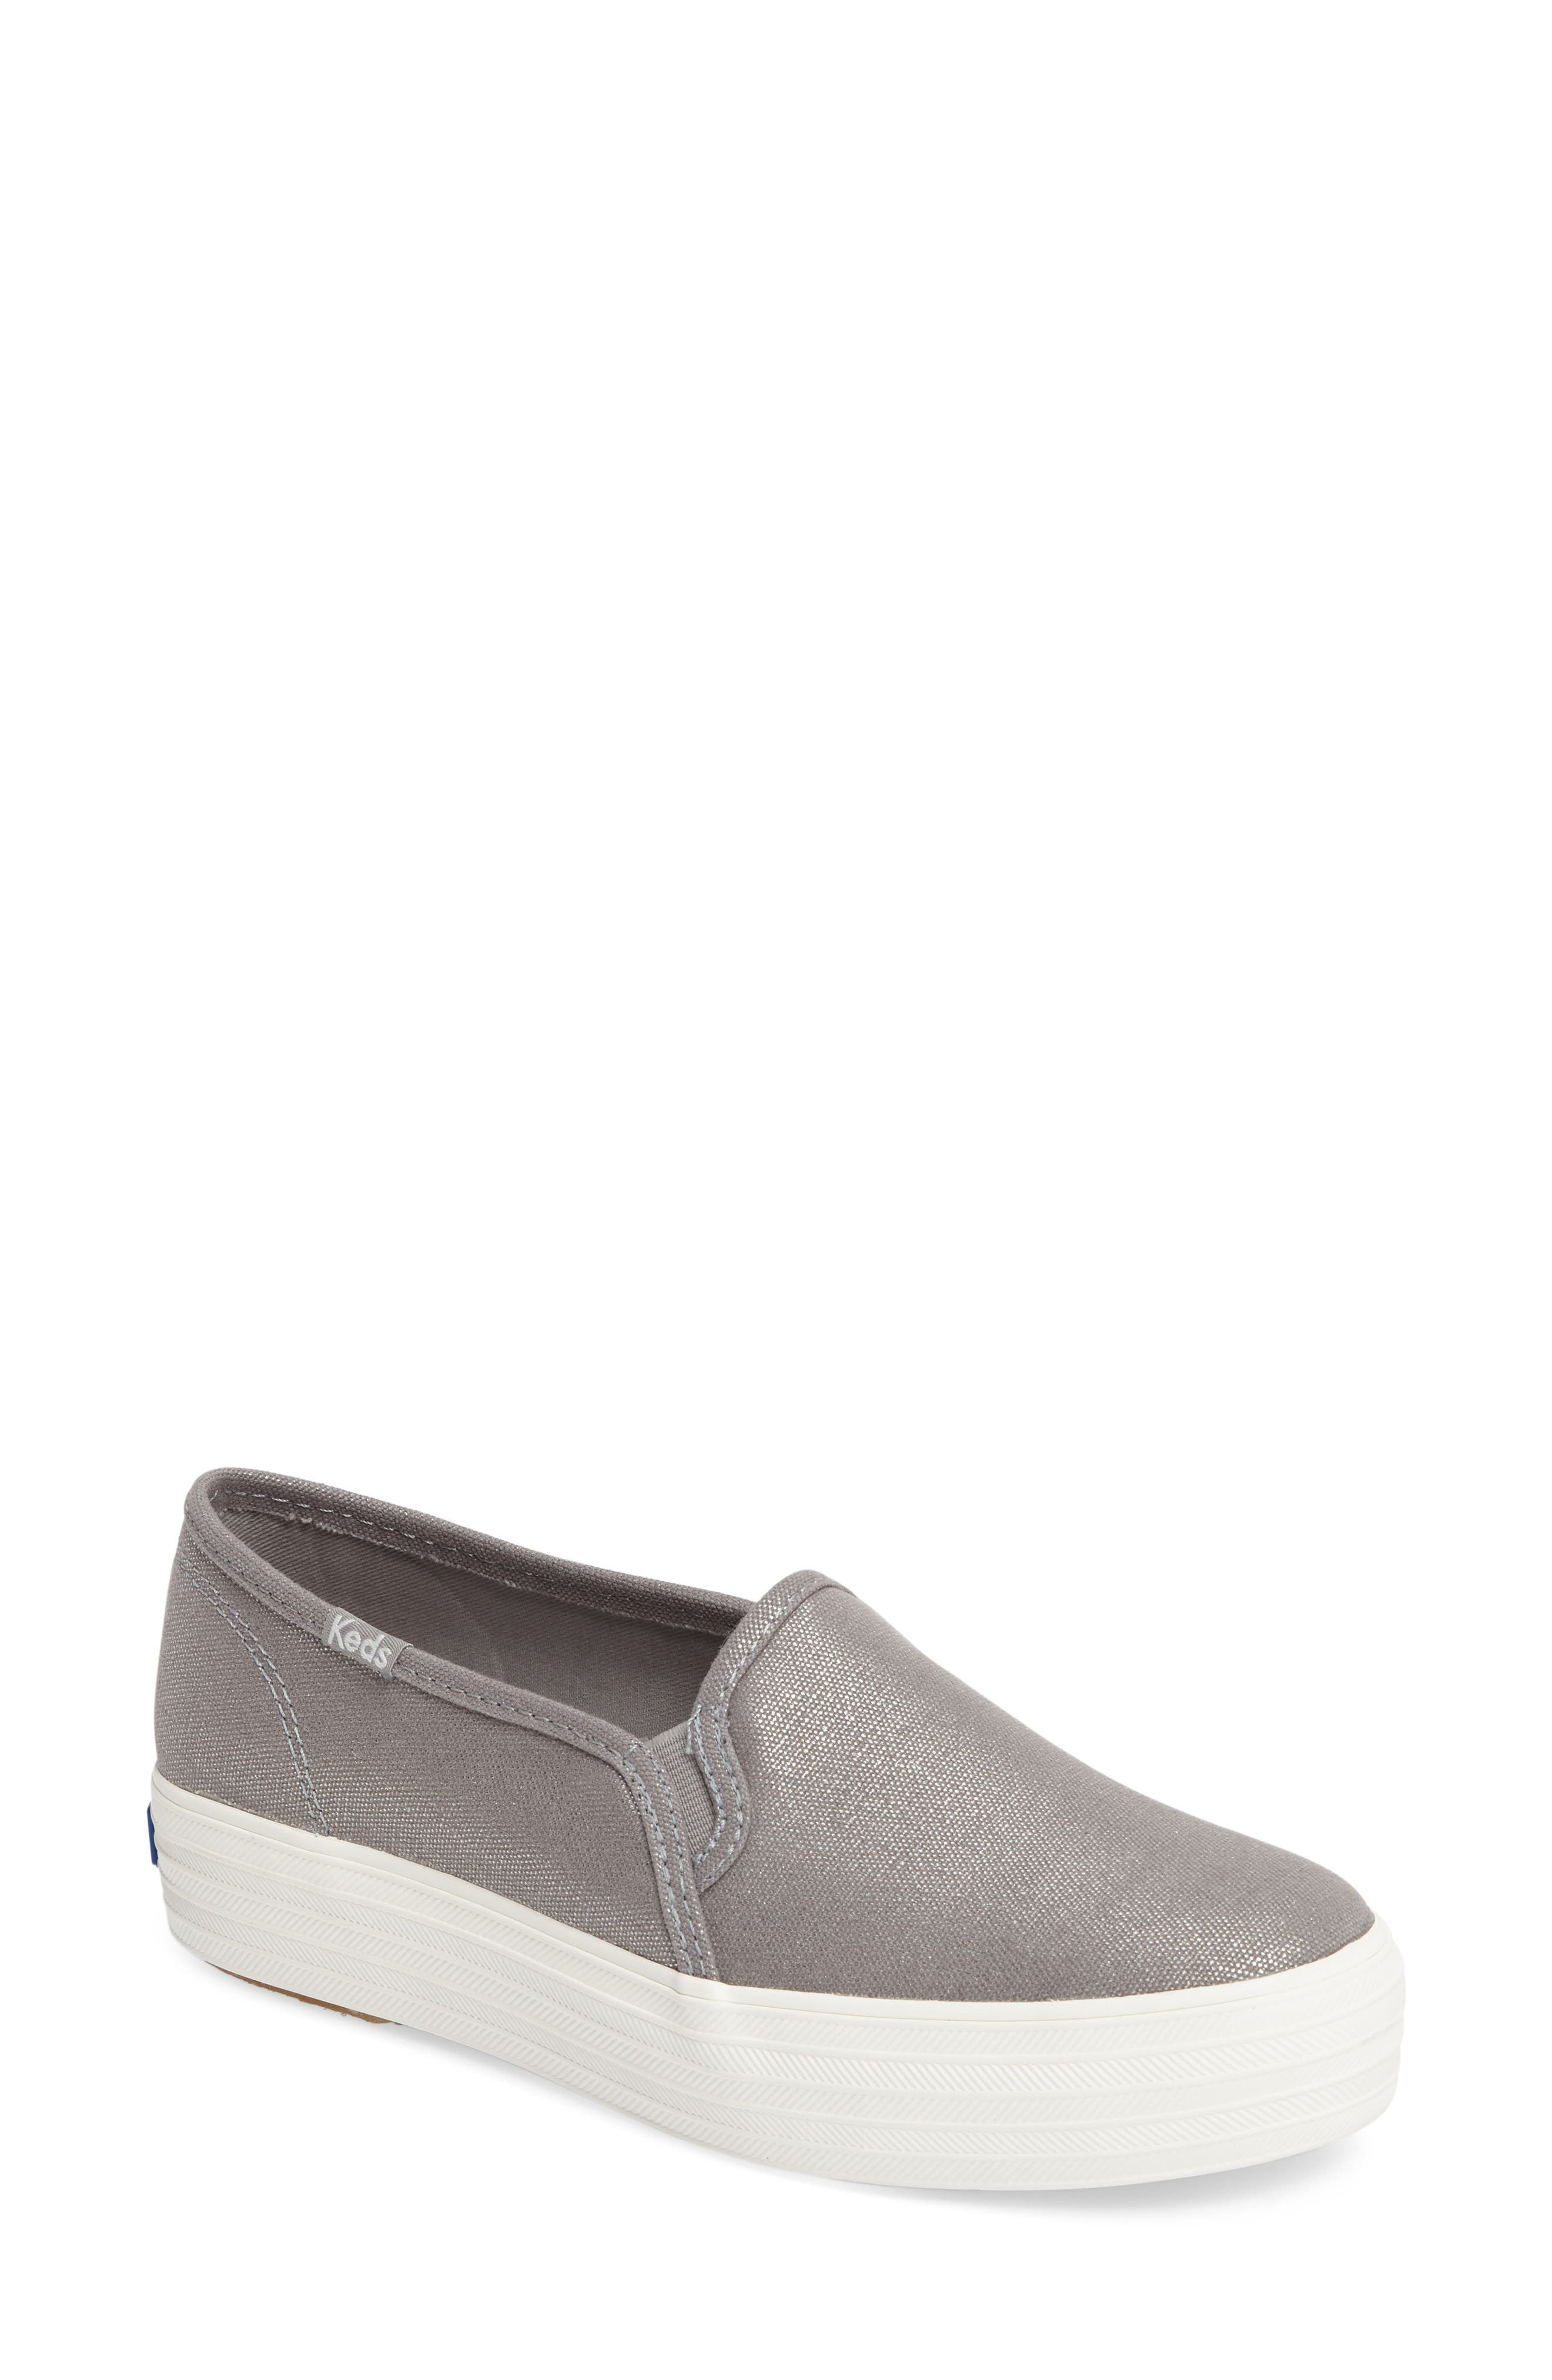 Triple Decker Slip-On Platform Sneaker,                             Main thumbnail 1, color,                             Silver